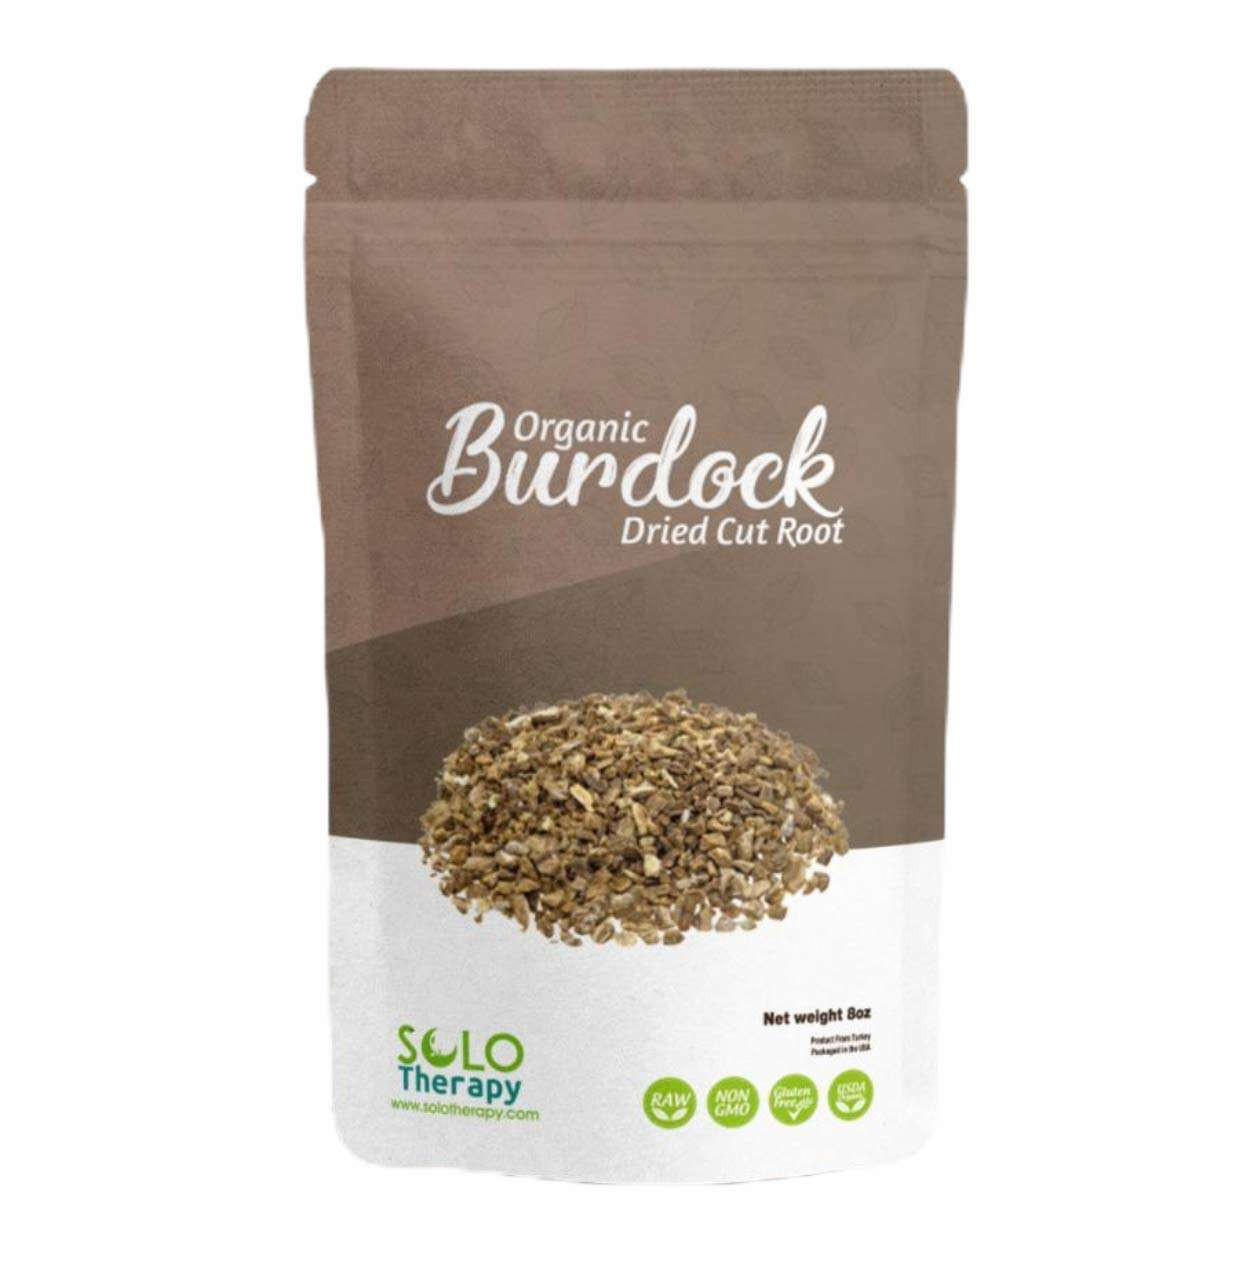 Solo Therapy Organic Dried Burdock Root